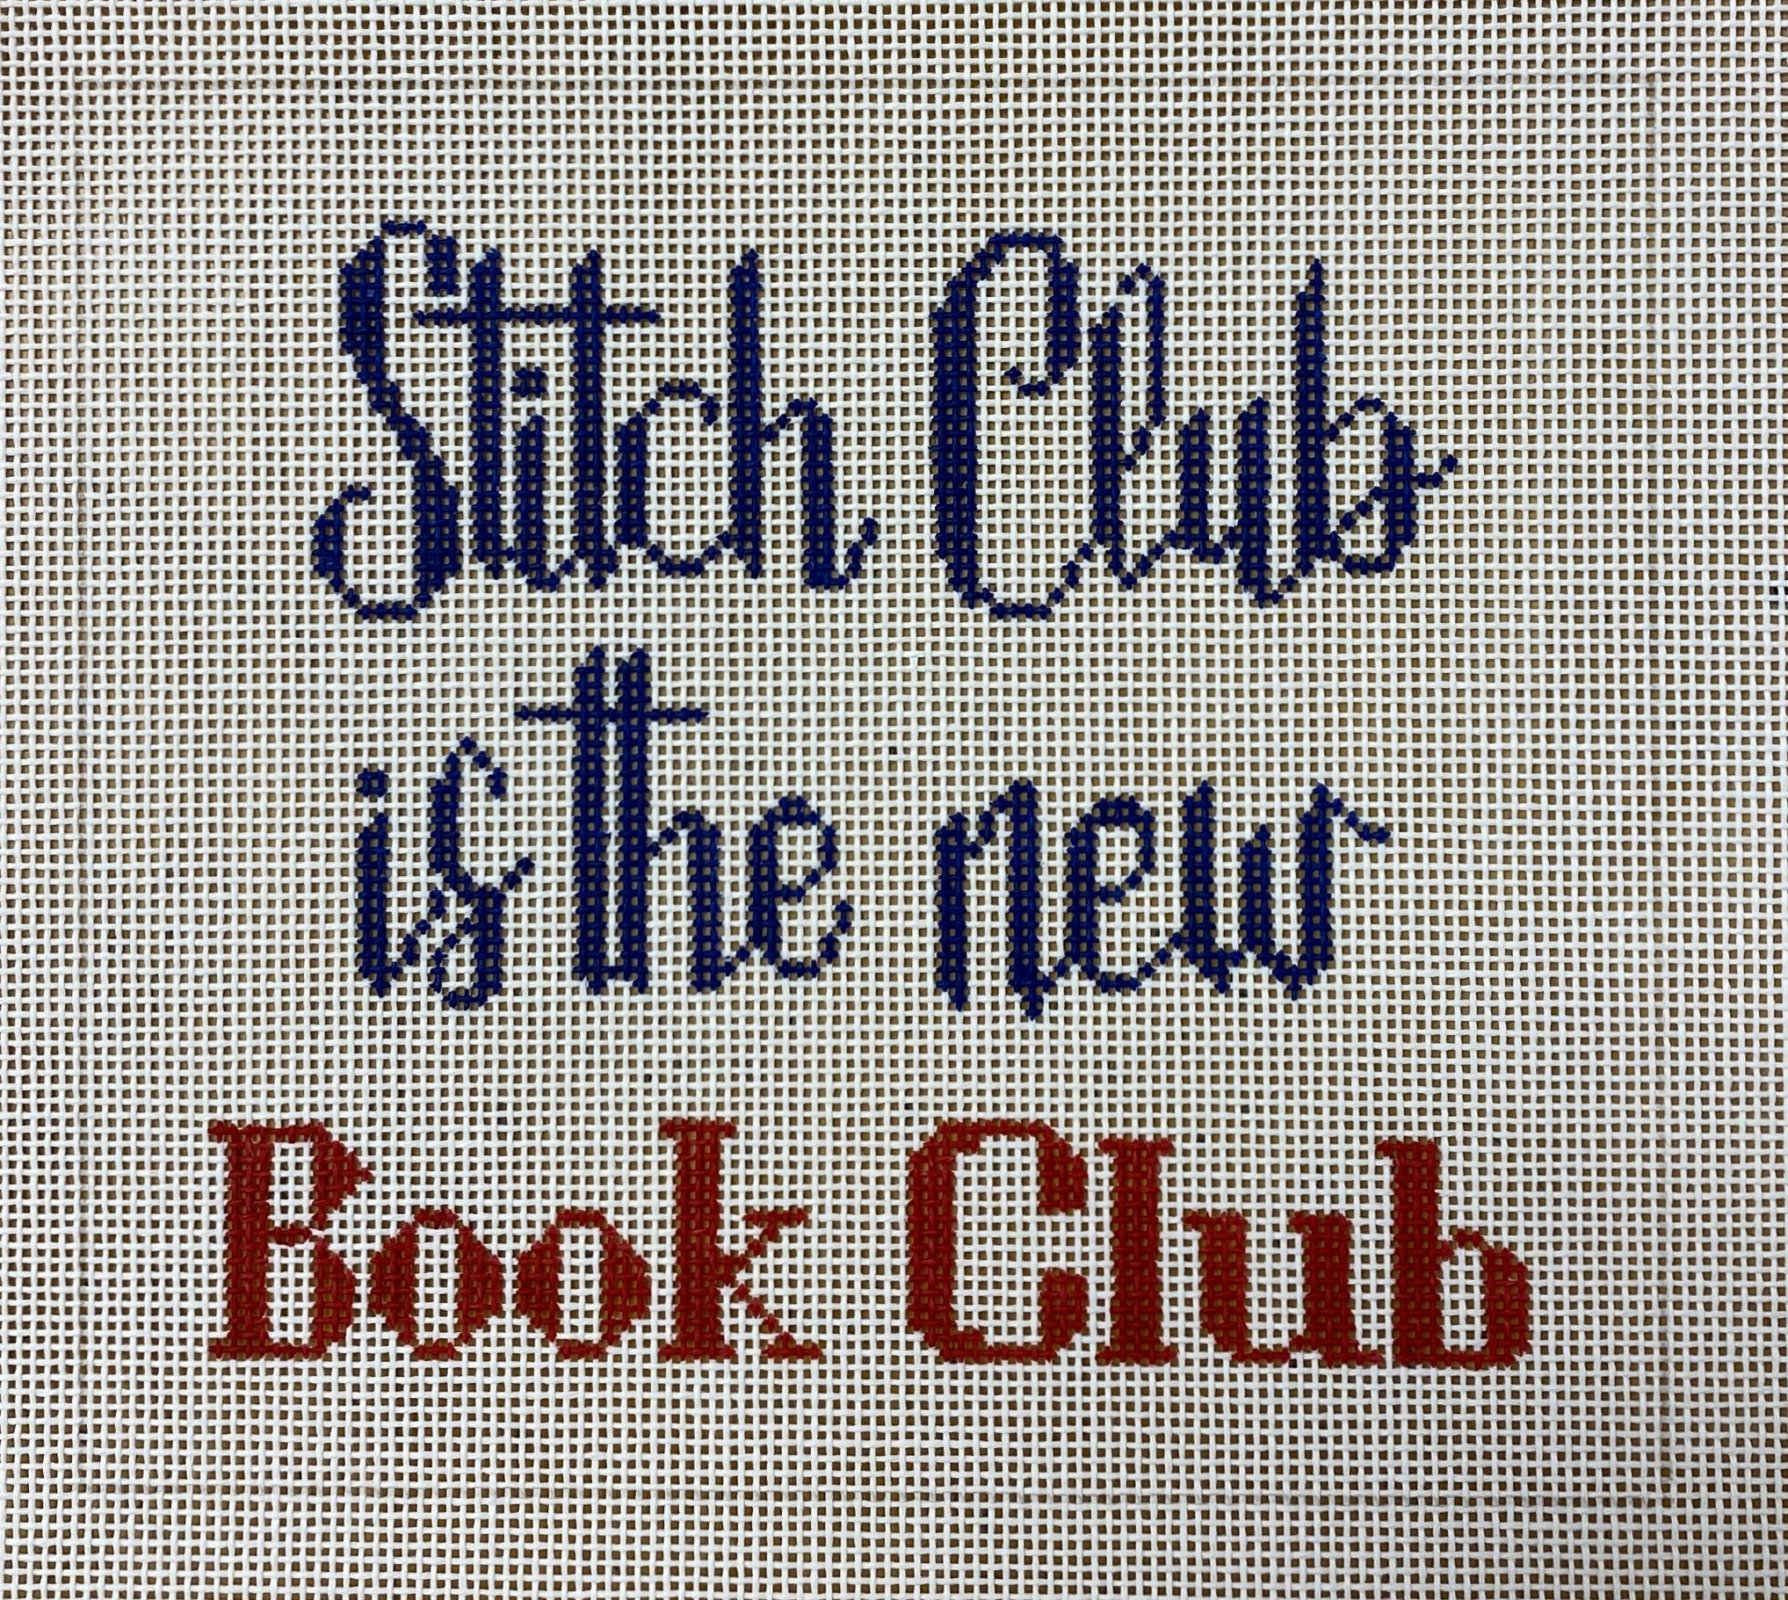 stitch club is the new book club